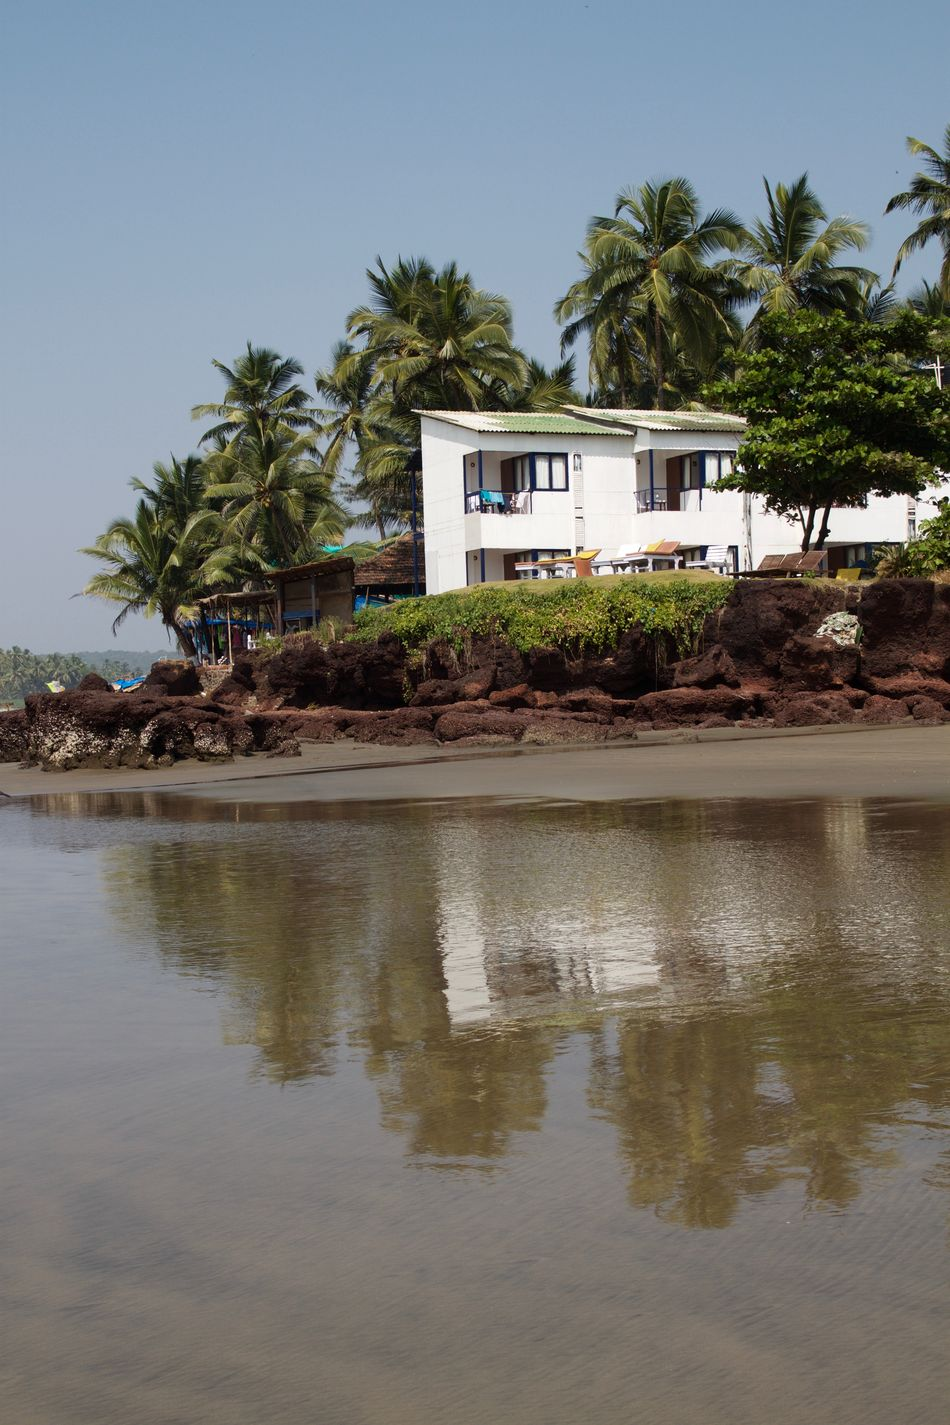 Architecture Ashvem Ashvem Beach Beach Beach Life Day Goa India Landscape Nature No People North Goa Outdoors Palm Tree Sea Tropical Tropical Climate Vacations Water Water Reflections